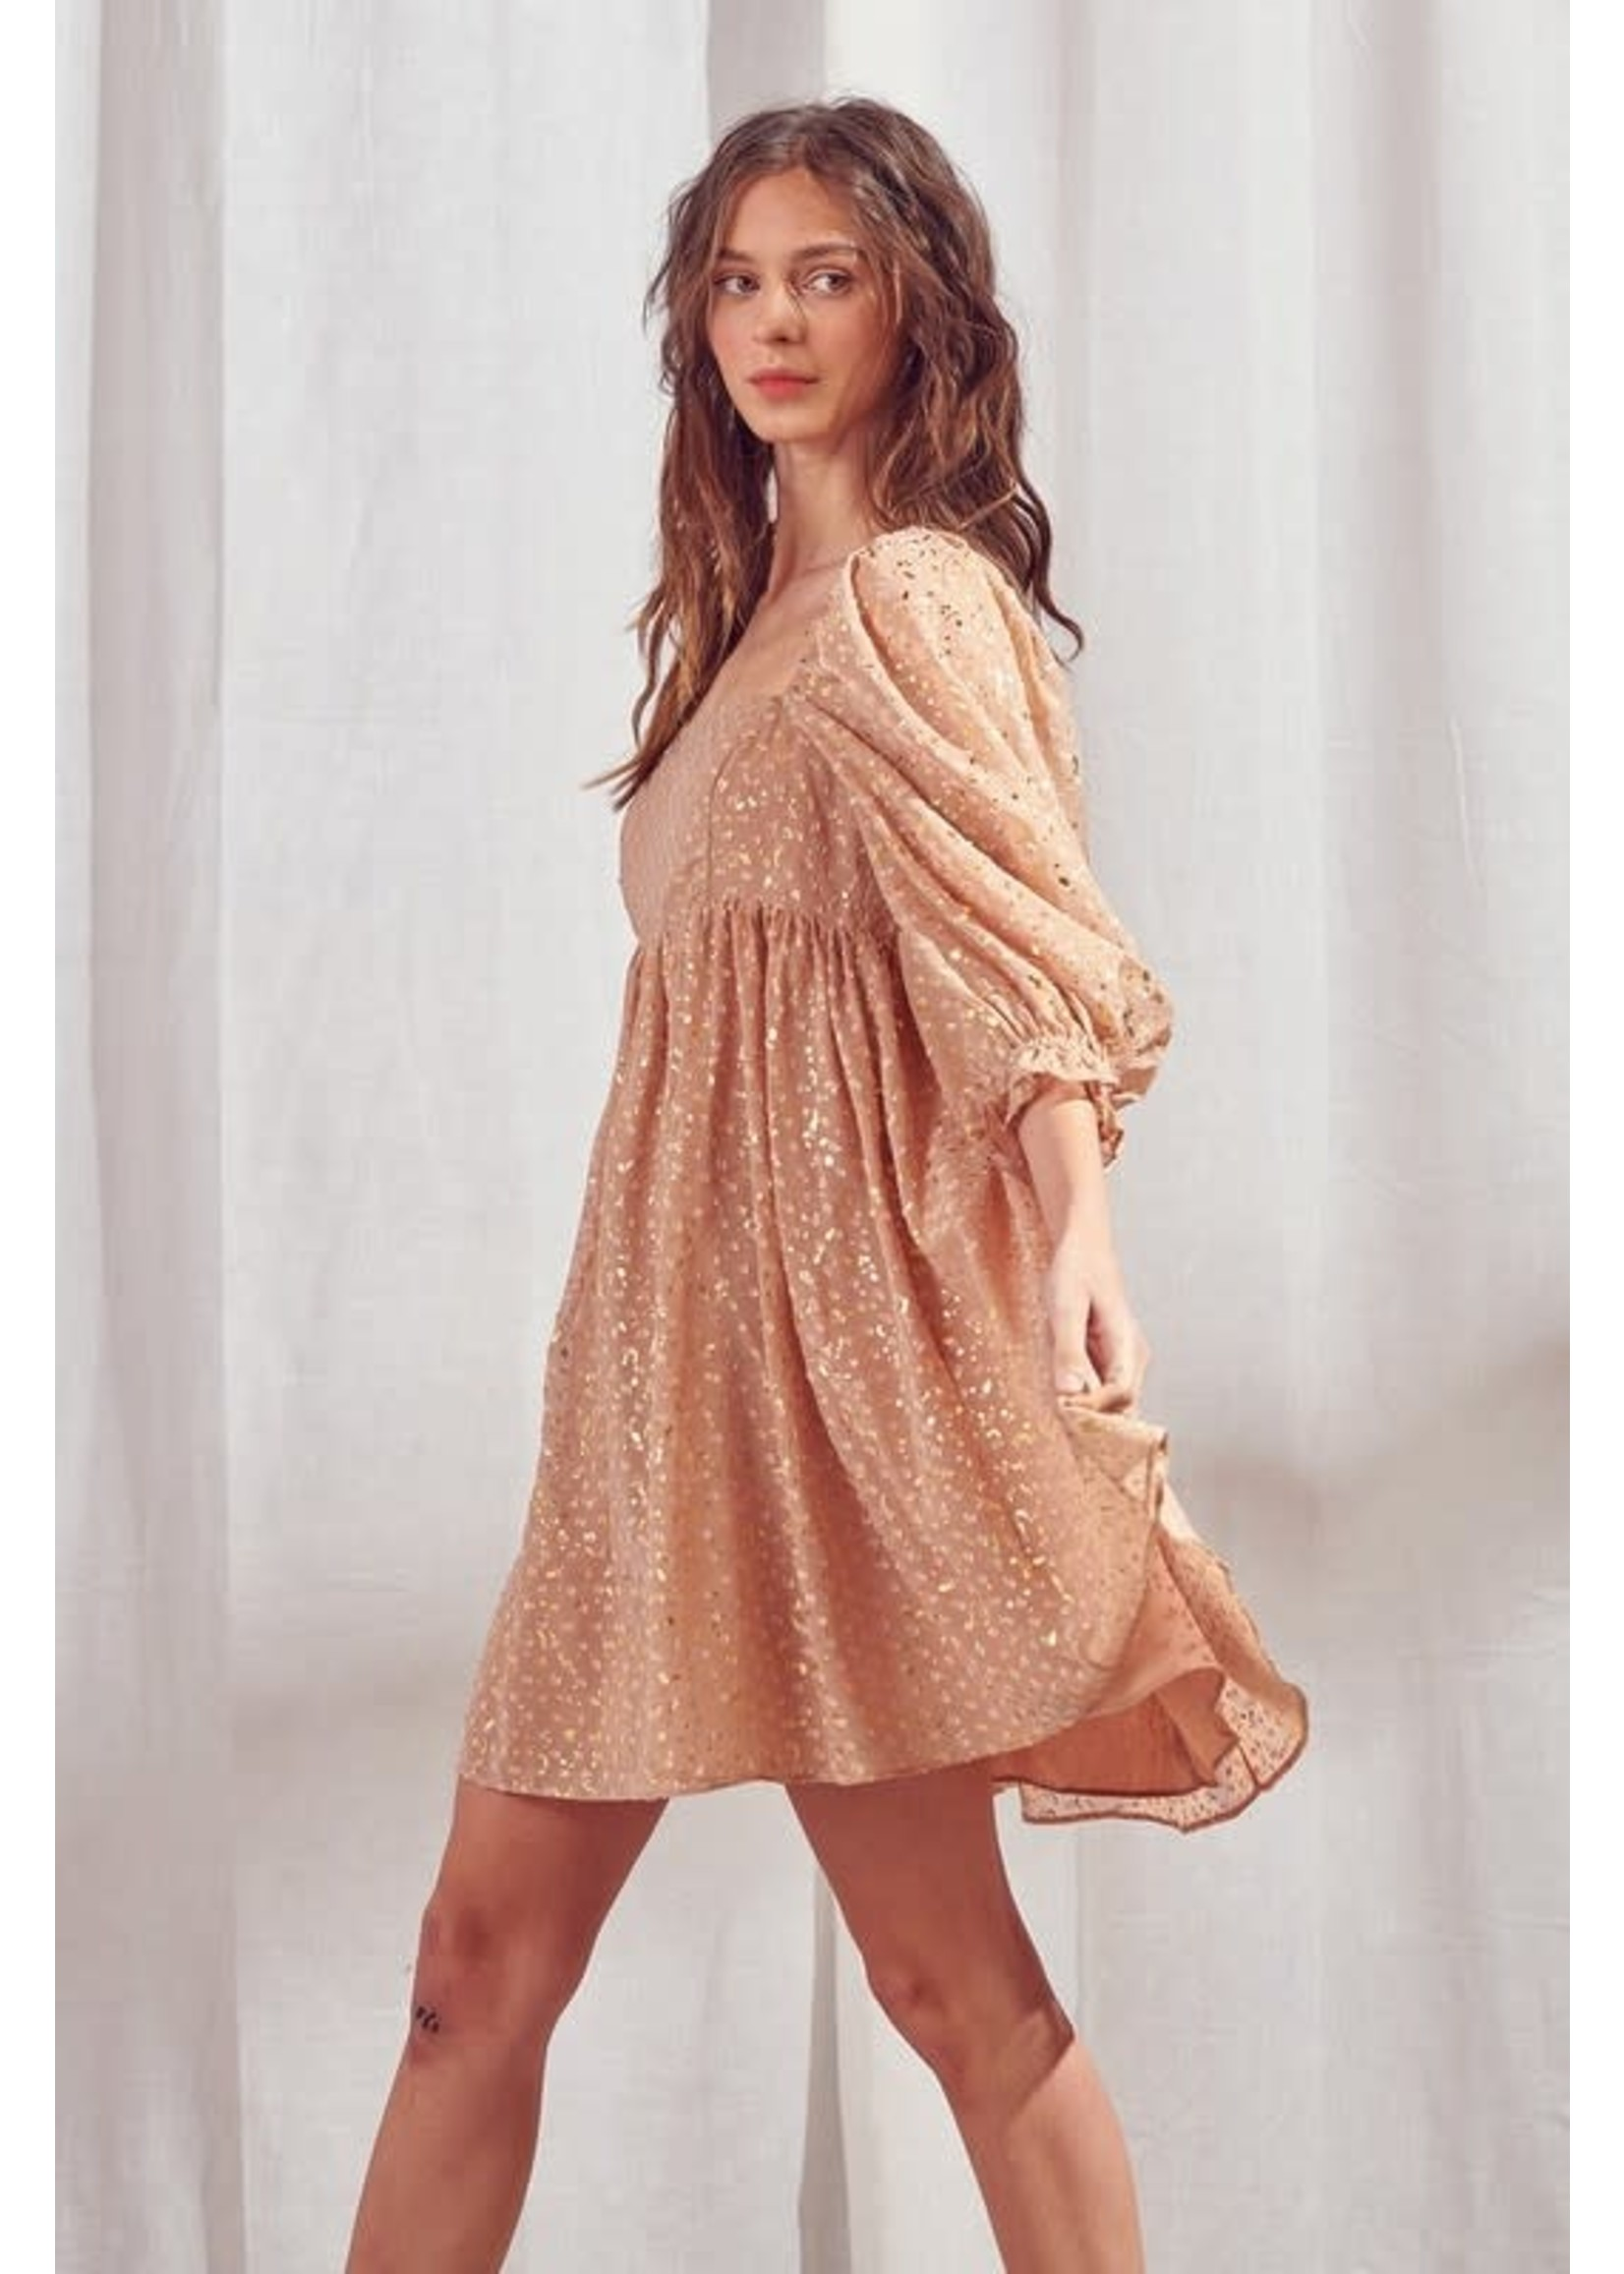 Storia Flaked Embroidered Babydoll Dress - JD2443L